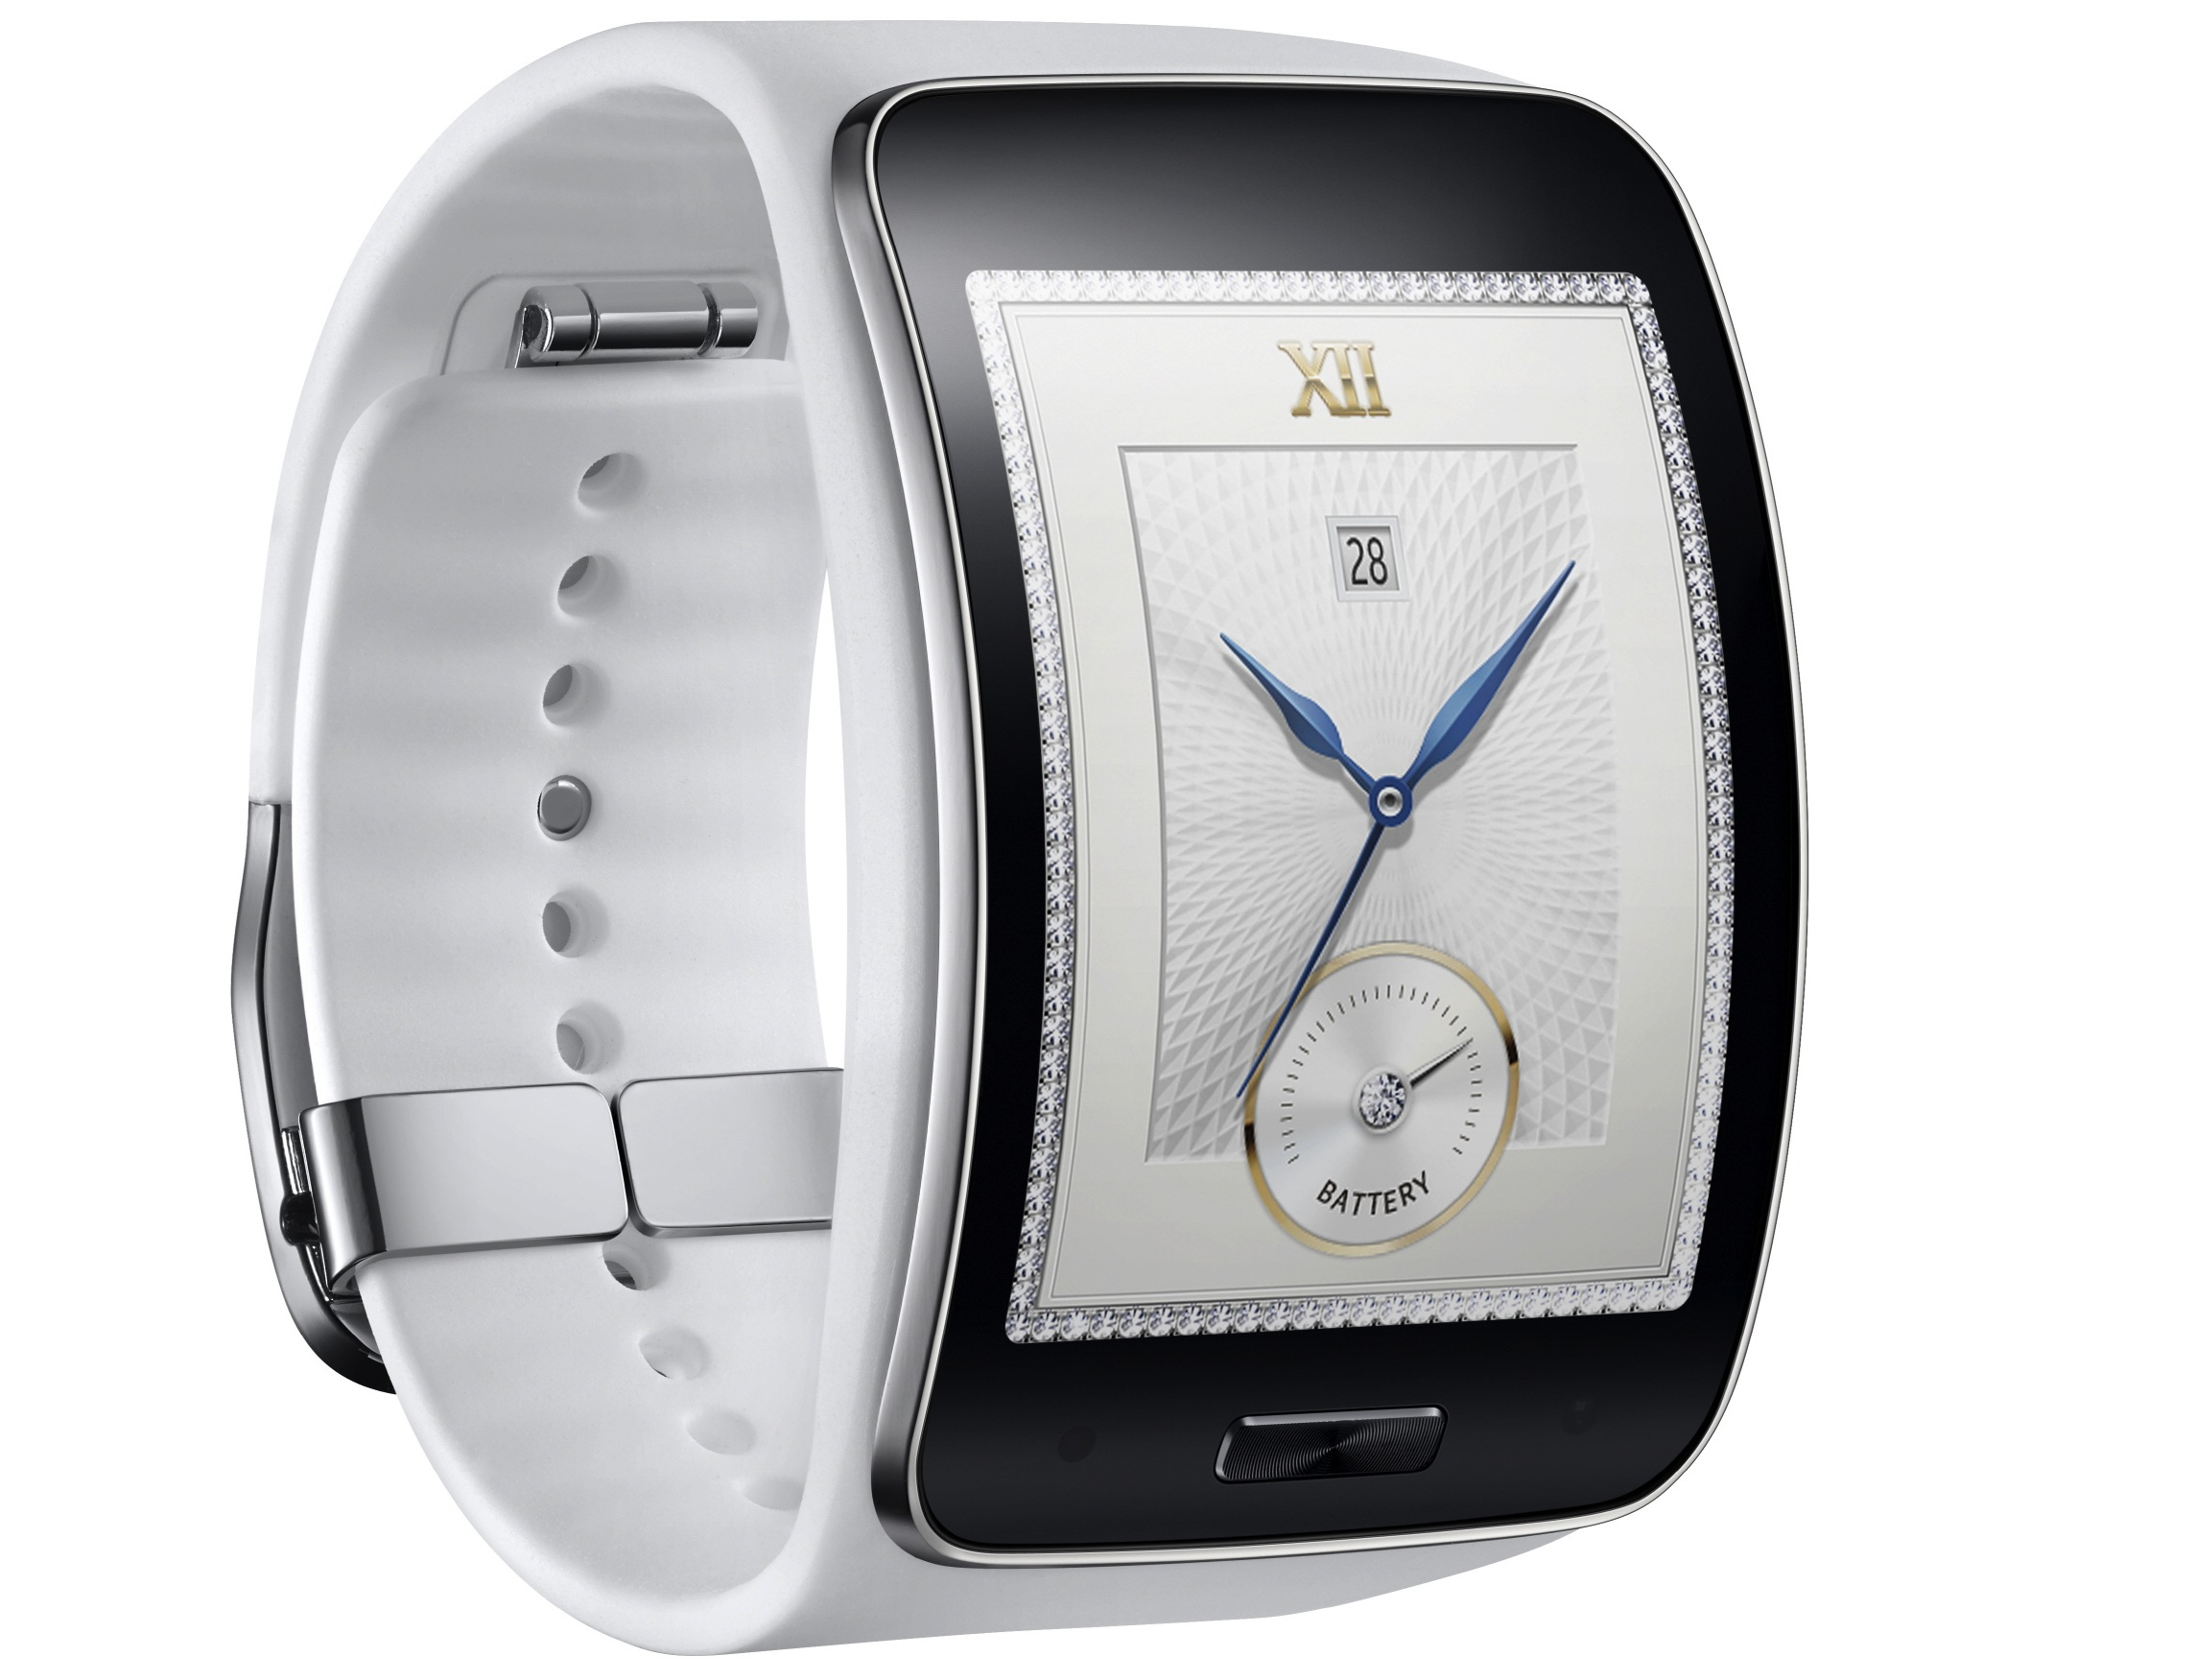 The single most mind-blowing fact about Samsung's Gear S